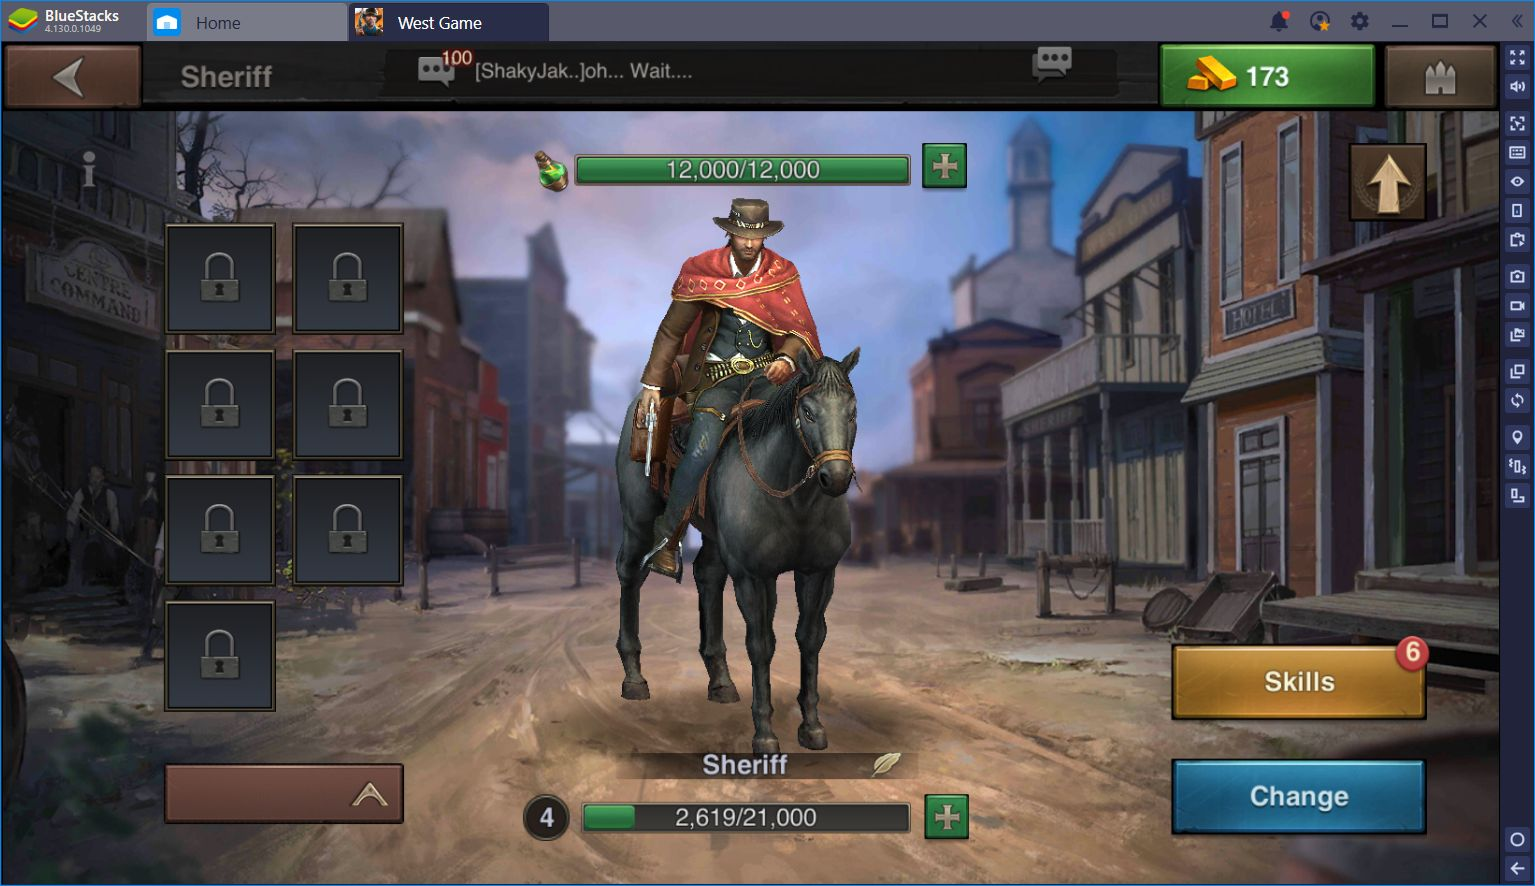 West Game: Conquest Gameplay in the Wild West